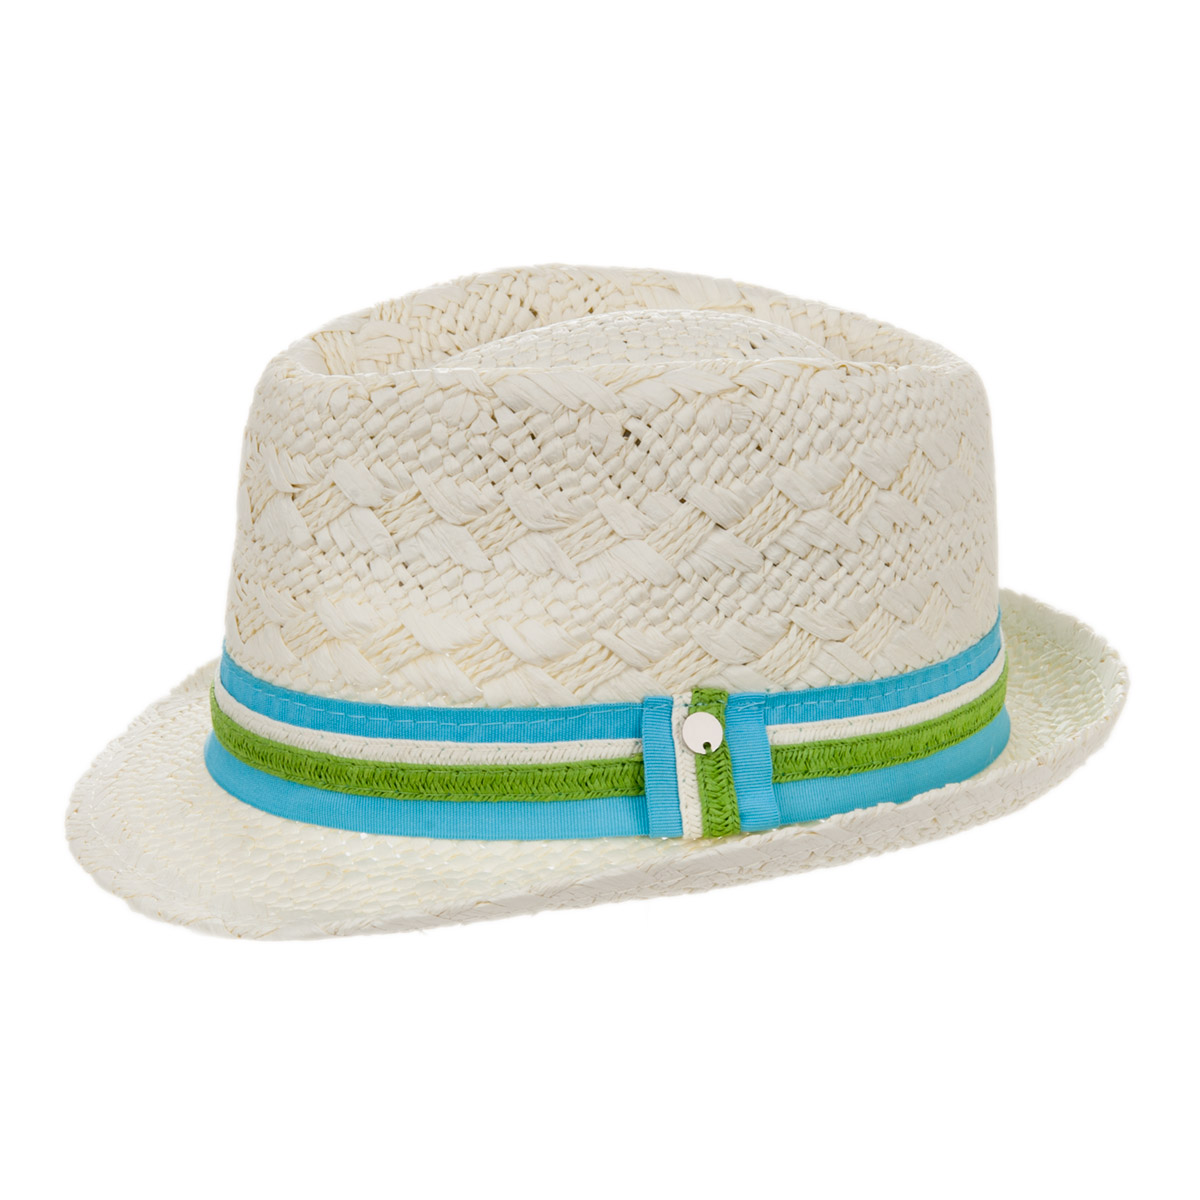 14ec4a25f371b7 Airy light paper straw trilby hat for women